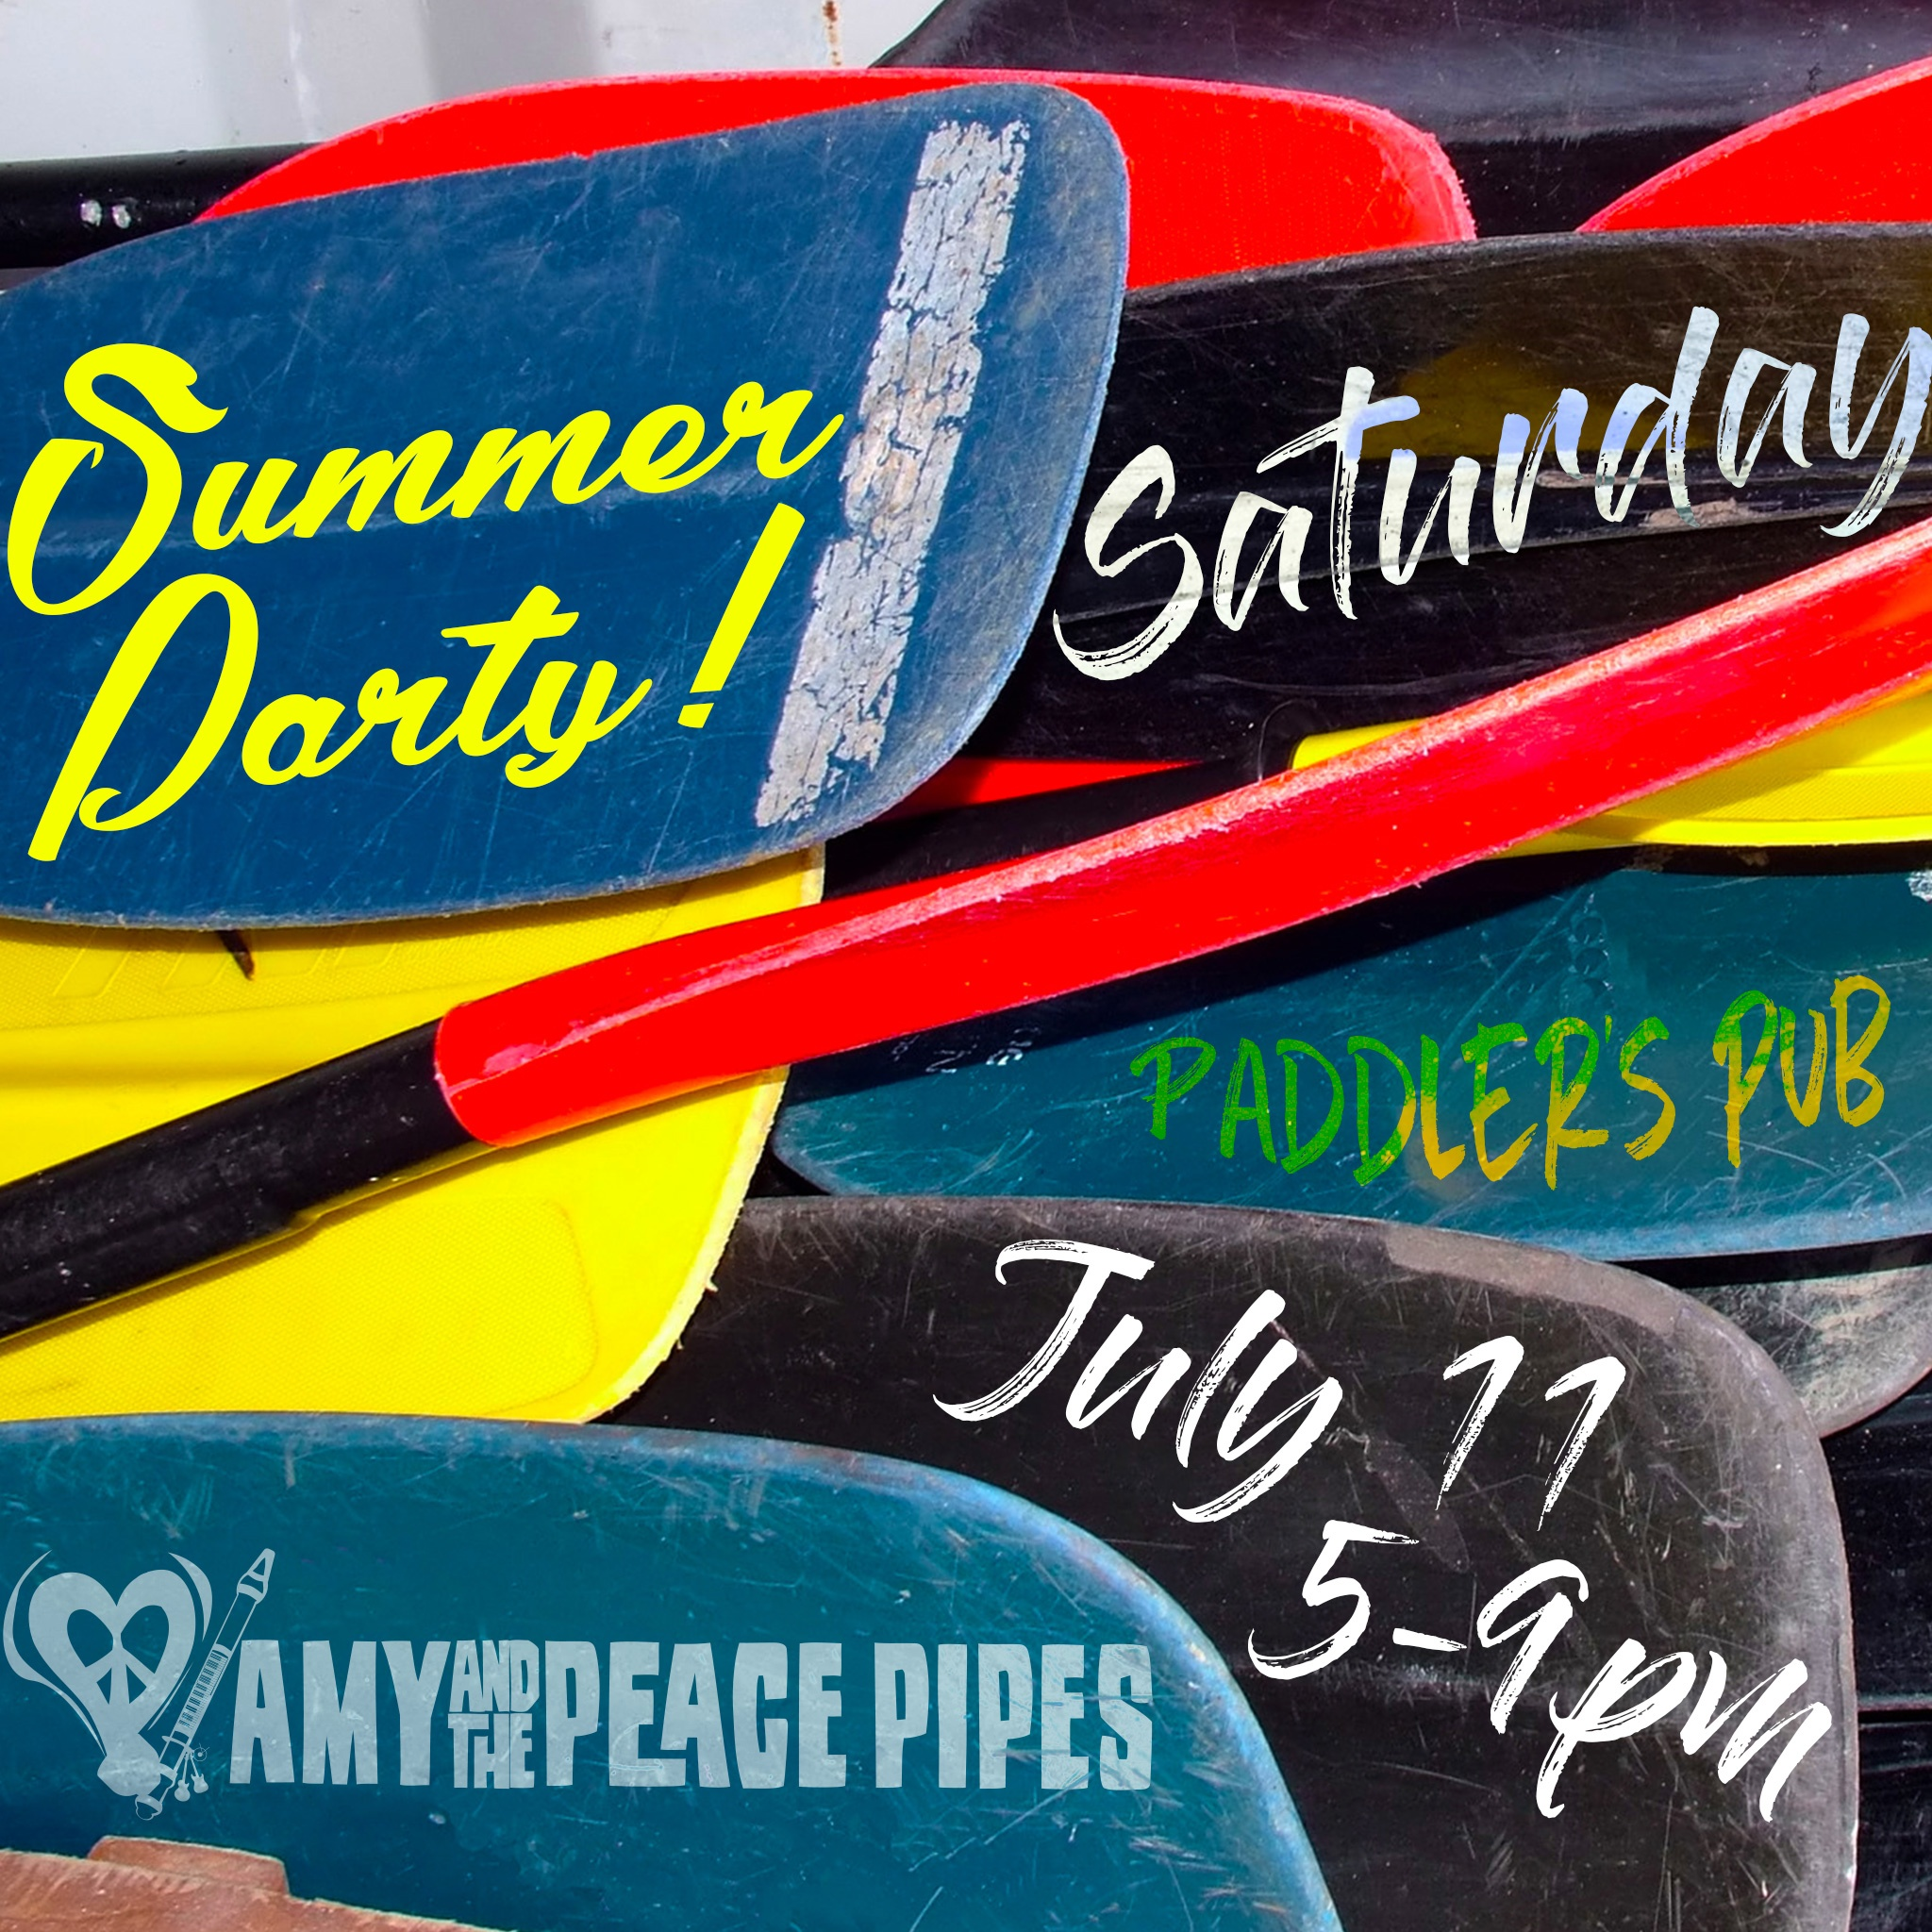 Summer Party at Paddler's Pub